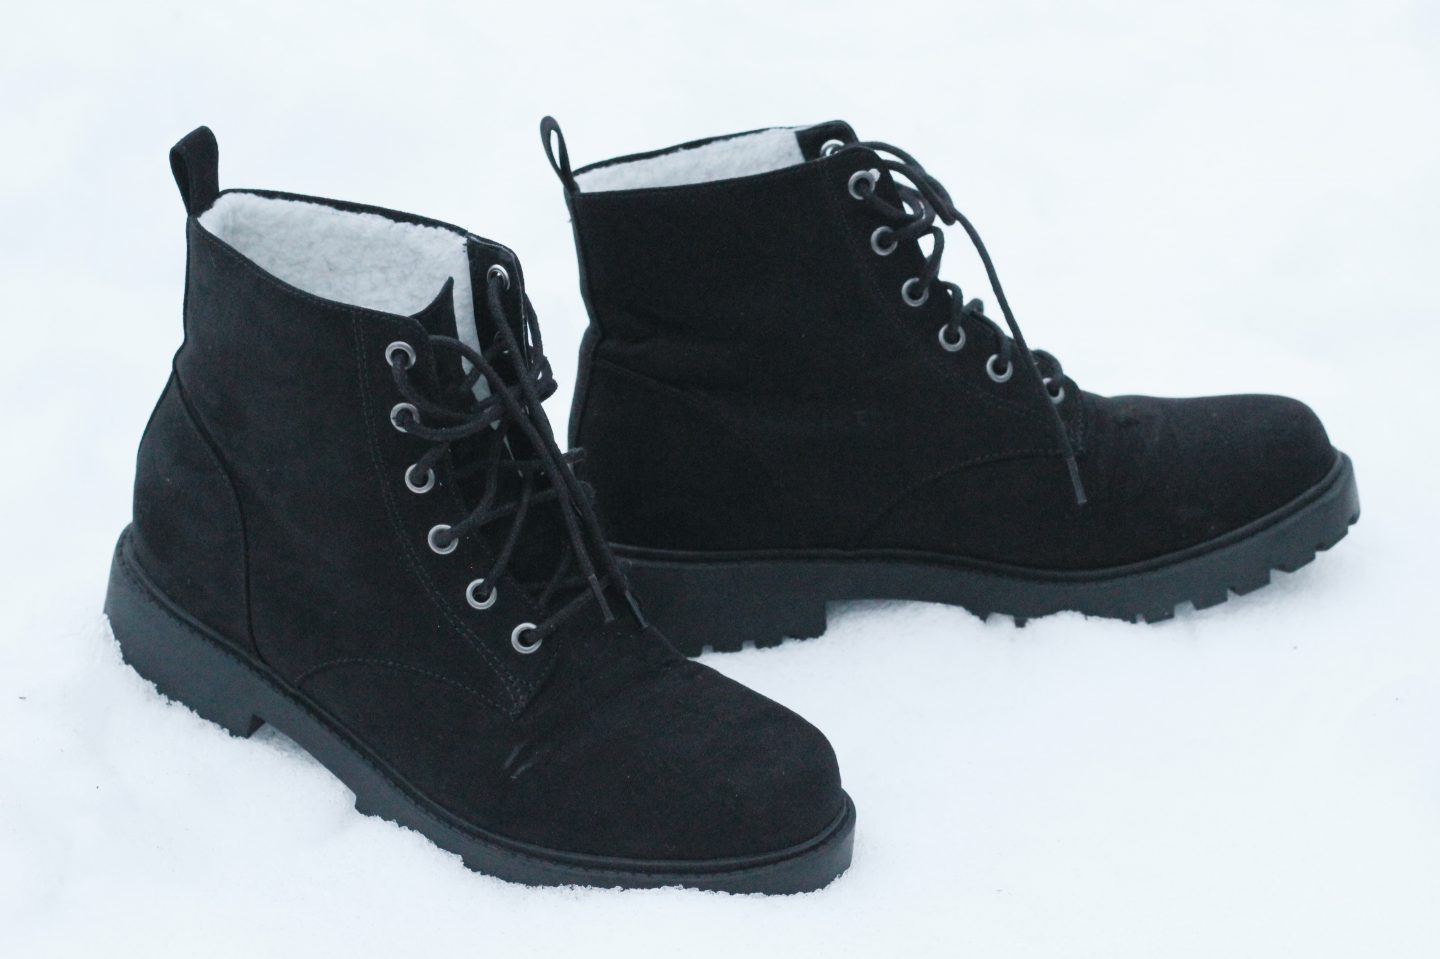 Cosy Winter Boots | Blogmas Day 13